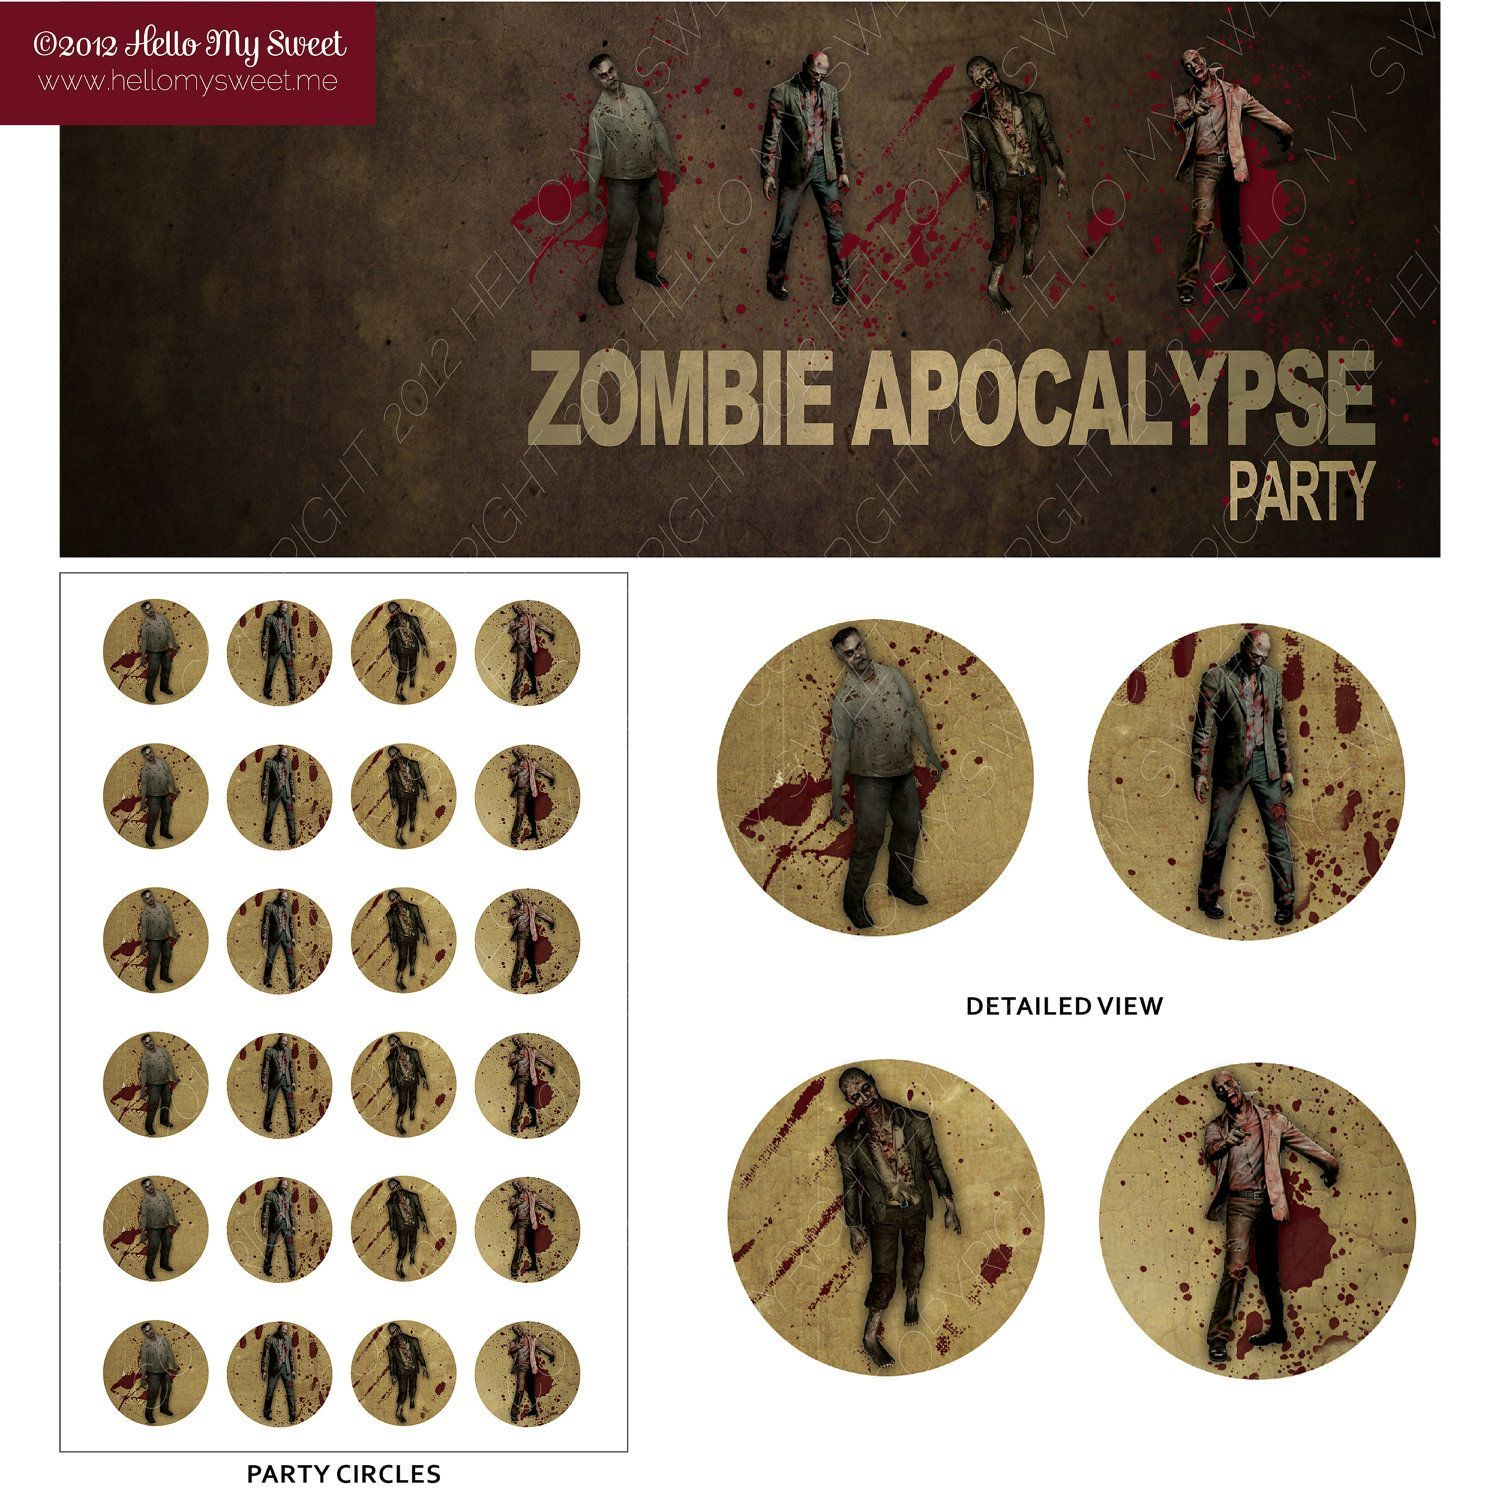 Zombie Party Printable Cupcake Toppers #zombieapocalypseparty The Walking Dead - Zombie Apocalypse Party Circles & Cupcake Toppers. 5.00, via Etsy. #zombieapocalypseparty